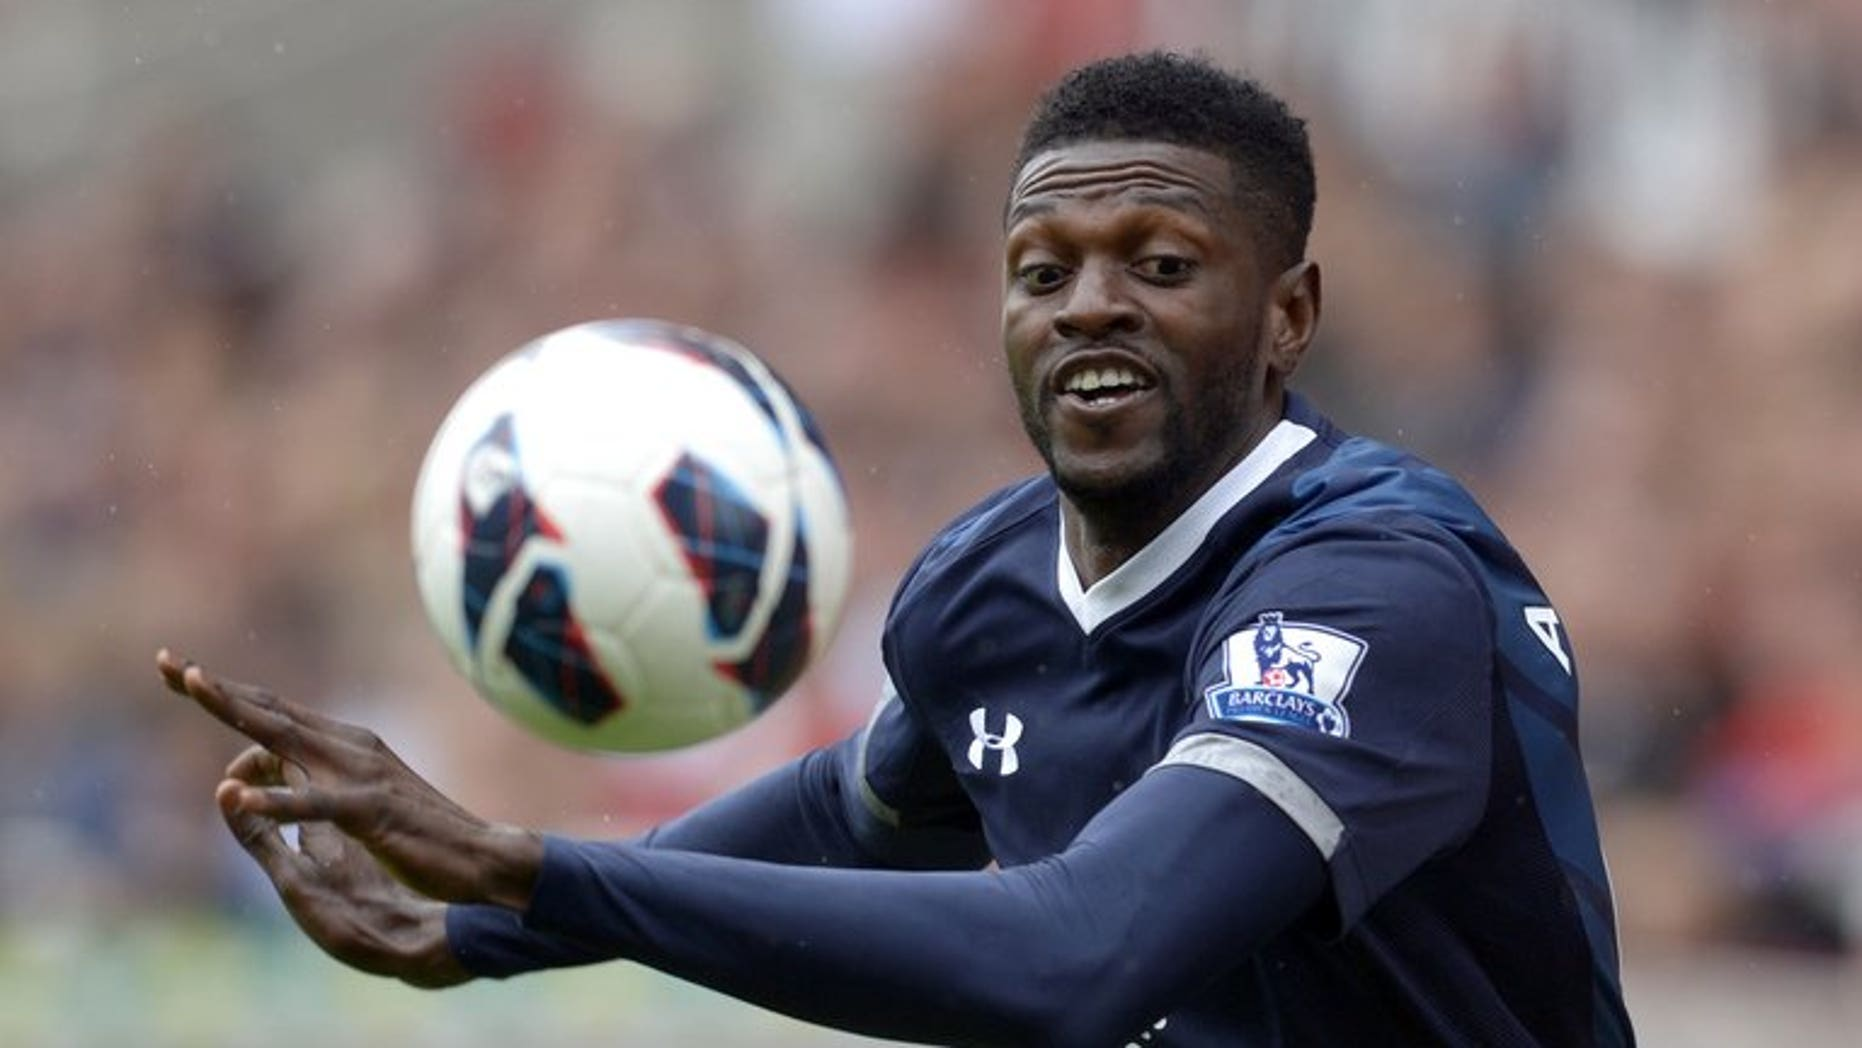 Tottenham Hotspur's Togolese striker Emmanuel Adebayor eyes the ball during the Premier League match against Stoke City in Stoke on Trent, central England, on May 12, 2013. Tottenham Hotspur manager Andre Villas-Boas revealed on Thursday that he has asked Togolese striker Emmanuel Adebayor to train with the Premier League club's reserve team.